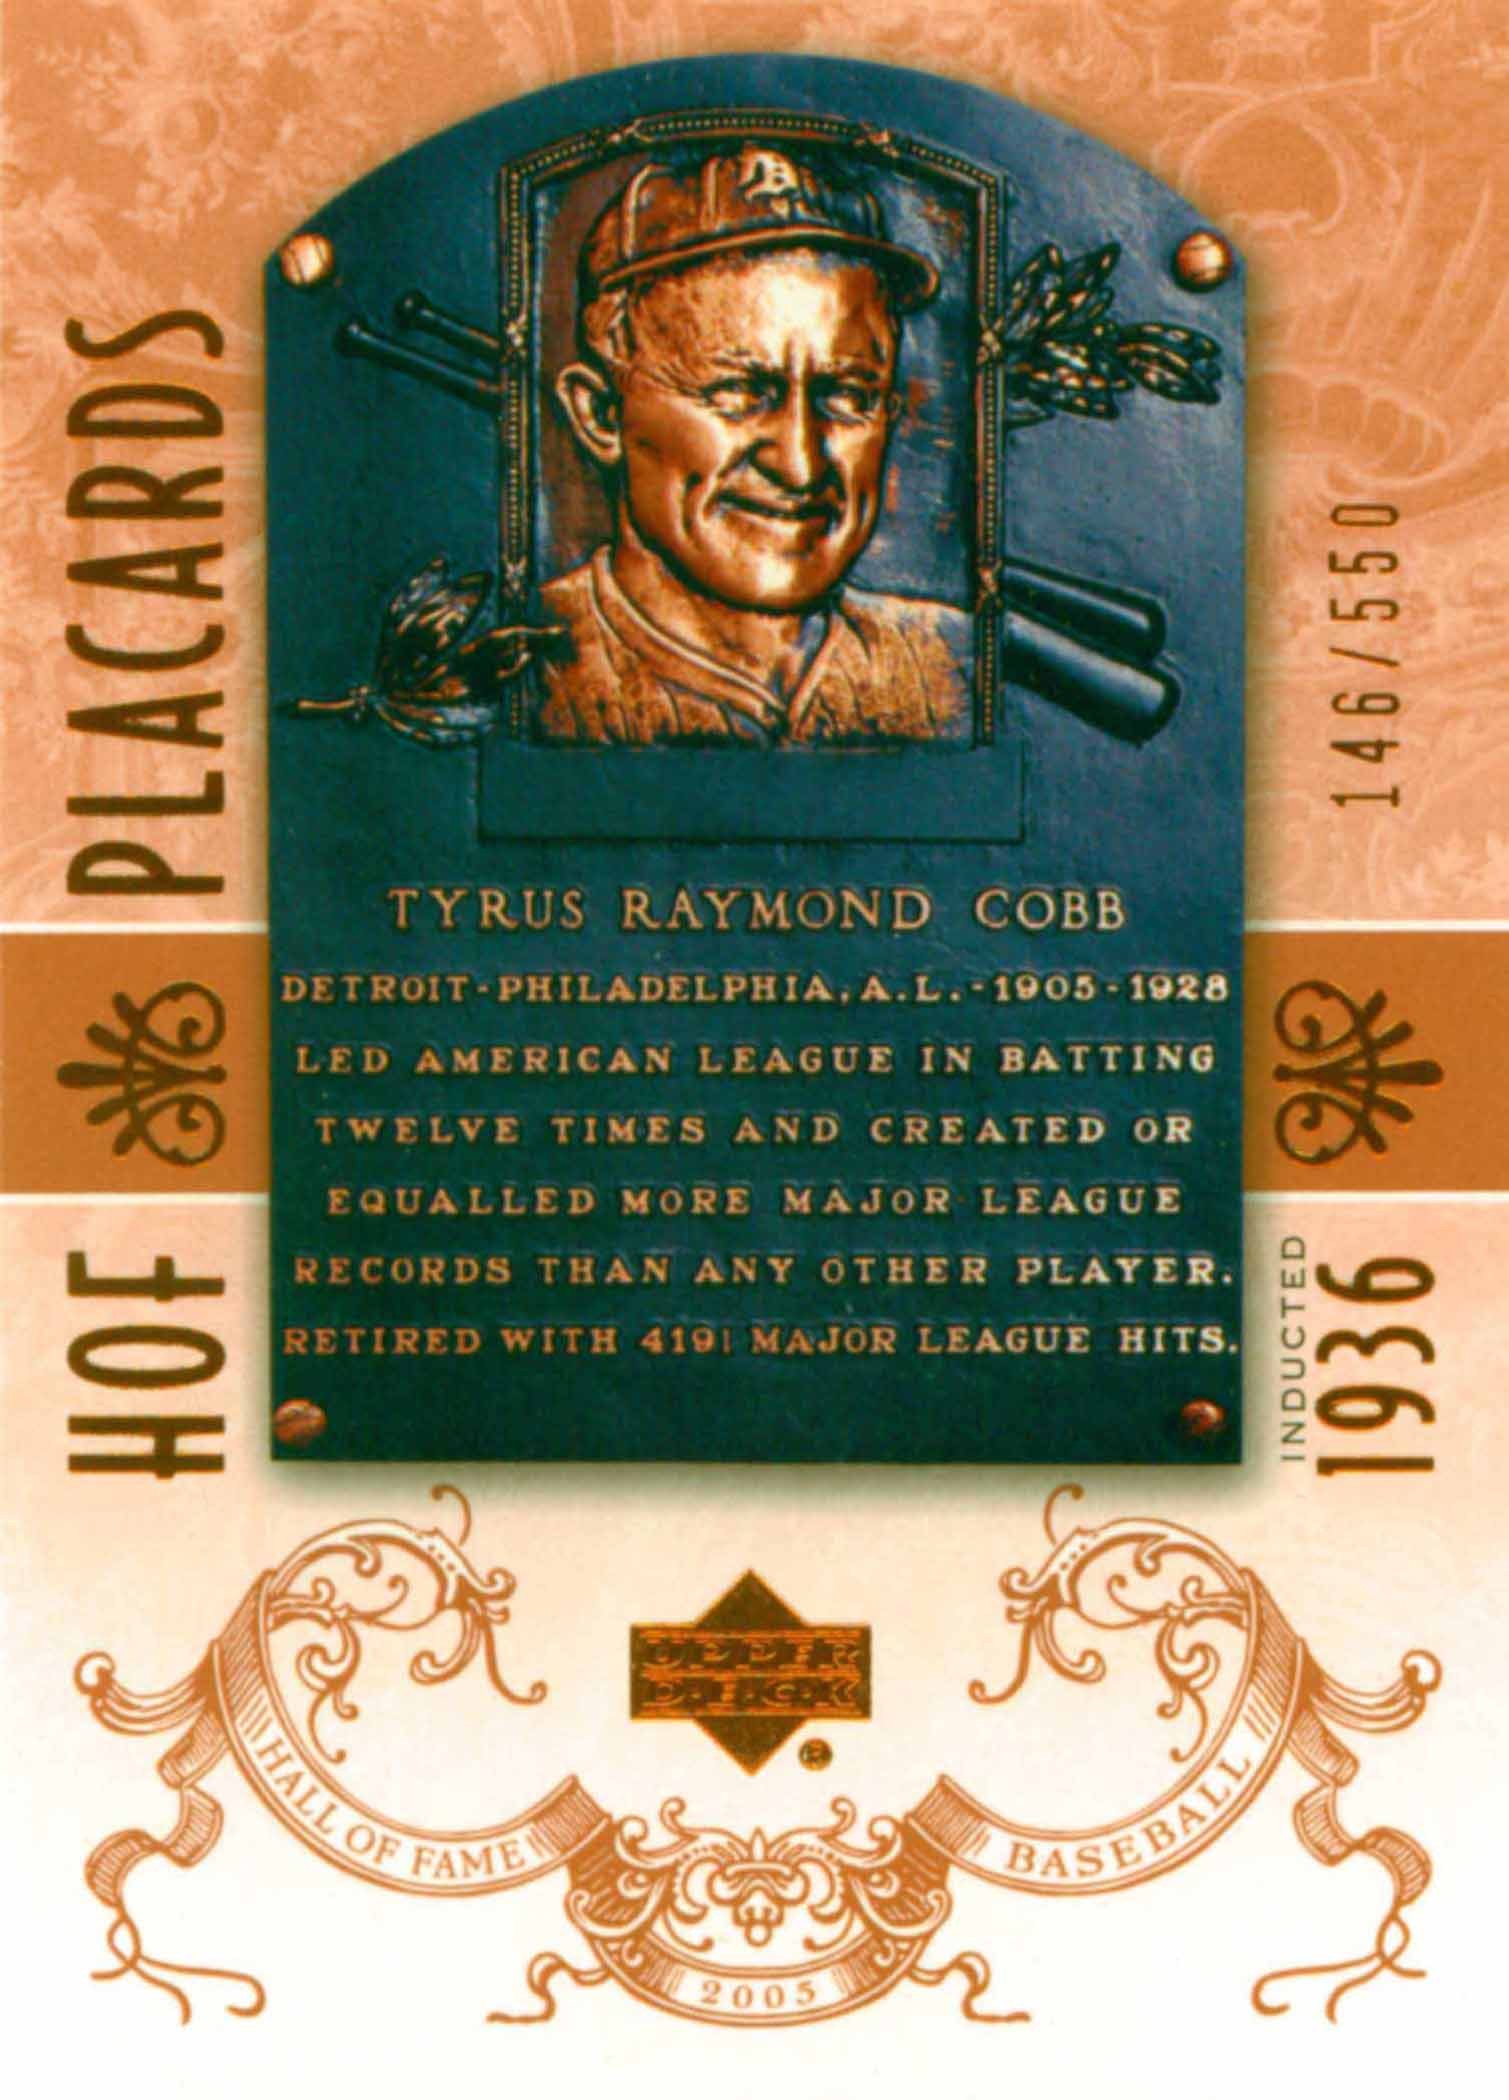 2005 Upper Deck Hall of Fame Placards